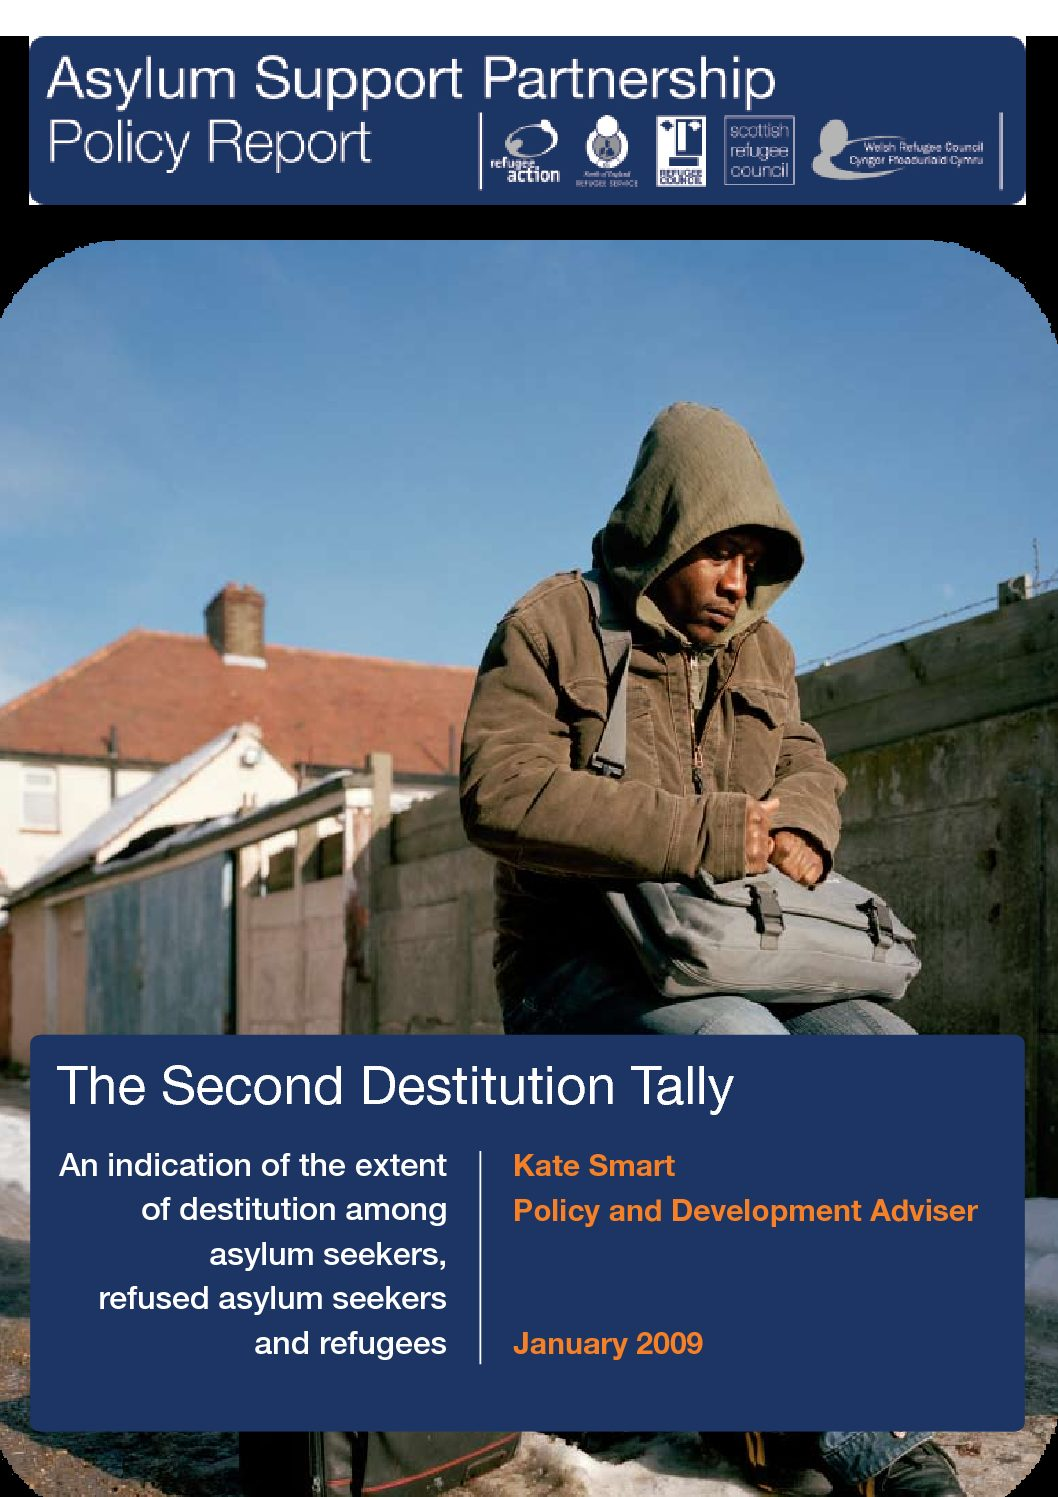 The-Second-Destitution-Tally-An-indication-of-the-extent-of-destitution-among-asylum-seekers-refused-asylum-seekers-and-refugees-pdf